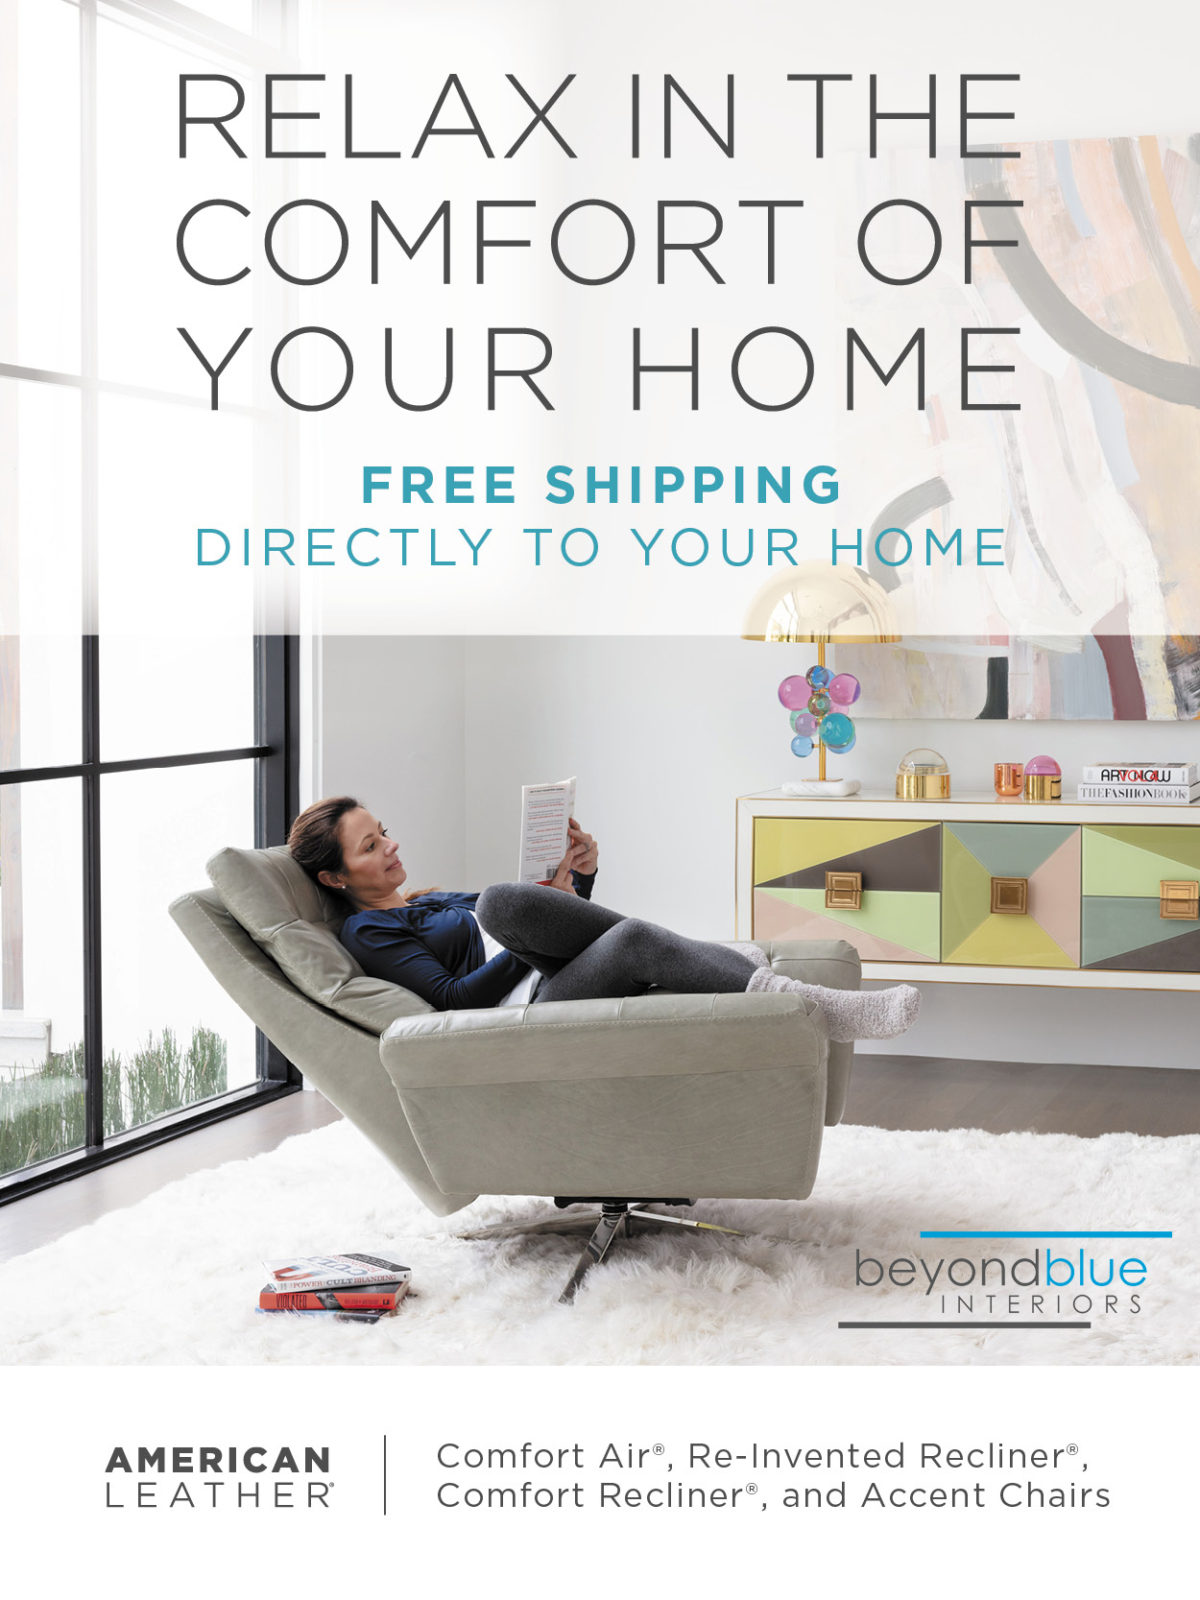 American Leather Recliners to your home free